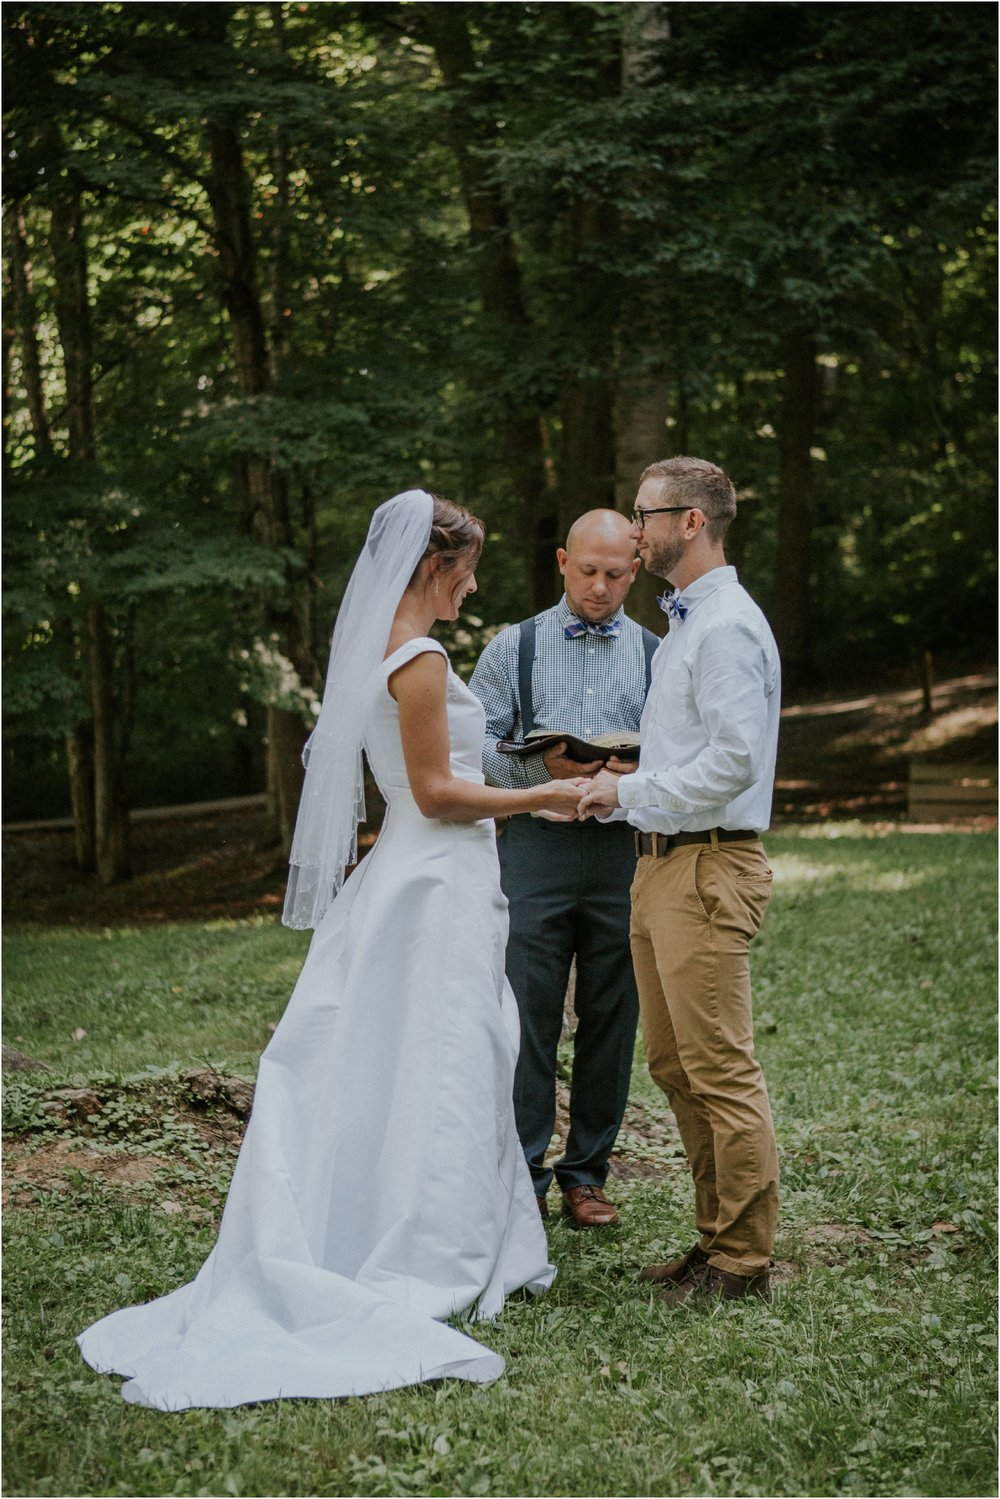 sugar-hollow-park-bristol-virginia-wedding-intimate-woodsy-black-forest-ceremony-adventurous-couple_0021.jpg